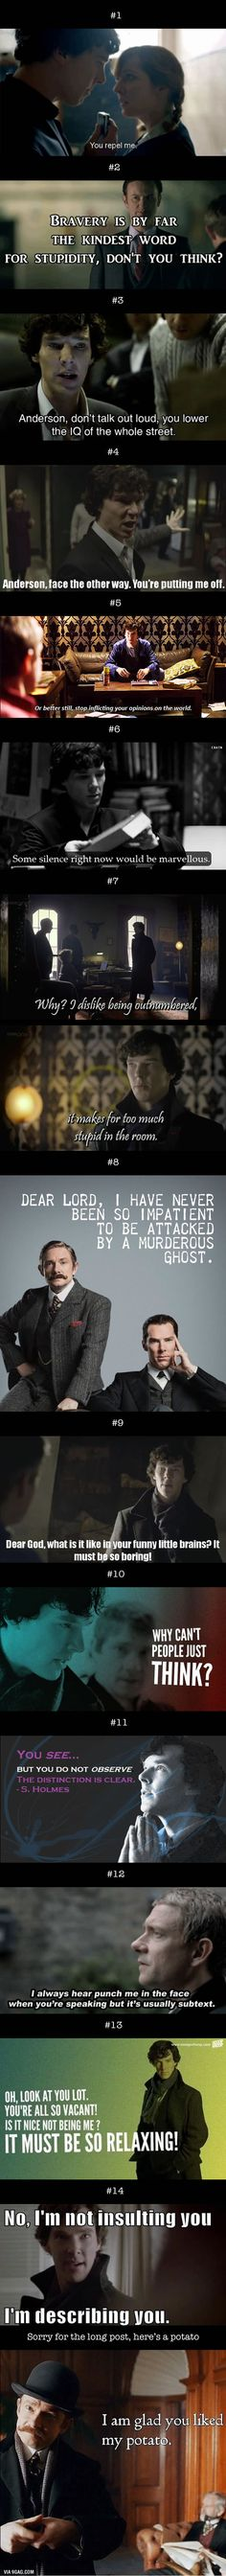 Is Sherlock Holmes Day! Here Are 14 Sherlock Insults To Crush Your Enemies Today Is Sherlock Holmes Day! Here Are 14 Sherlock Insults To Crush Your EnemiesToday Is Sherlock Holmes Day! Here Are 14 Sherlock Insults To Crush Your Enemies Sherlock Bbc, Sherlock Holmes Quotes, Sherlock Fandom, Benedict Cumberbatch Sherlock, Sherlock Season, Watson Sherlock, Jim Moriarty, Martin Freeman, Crush Your Enemies